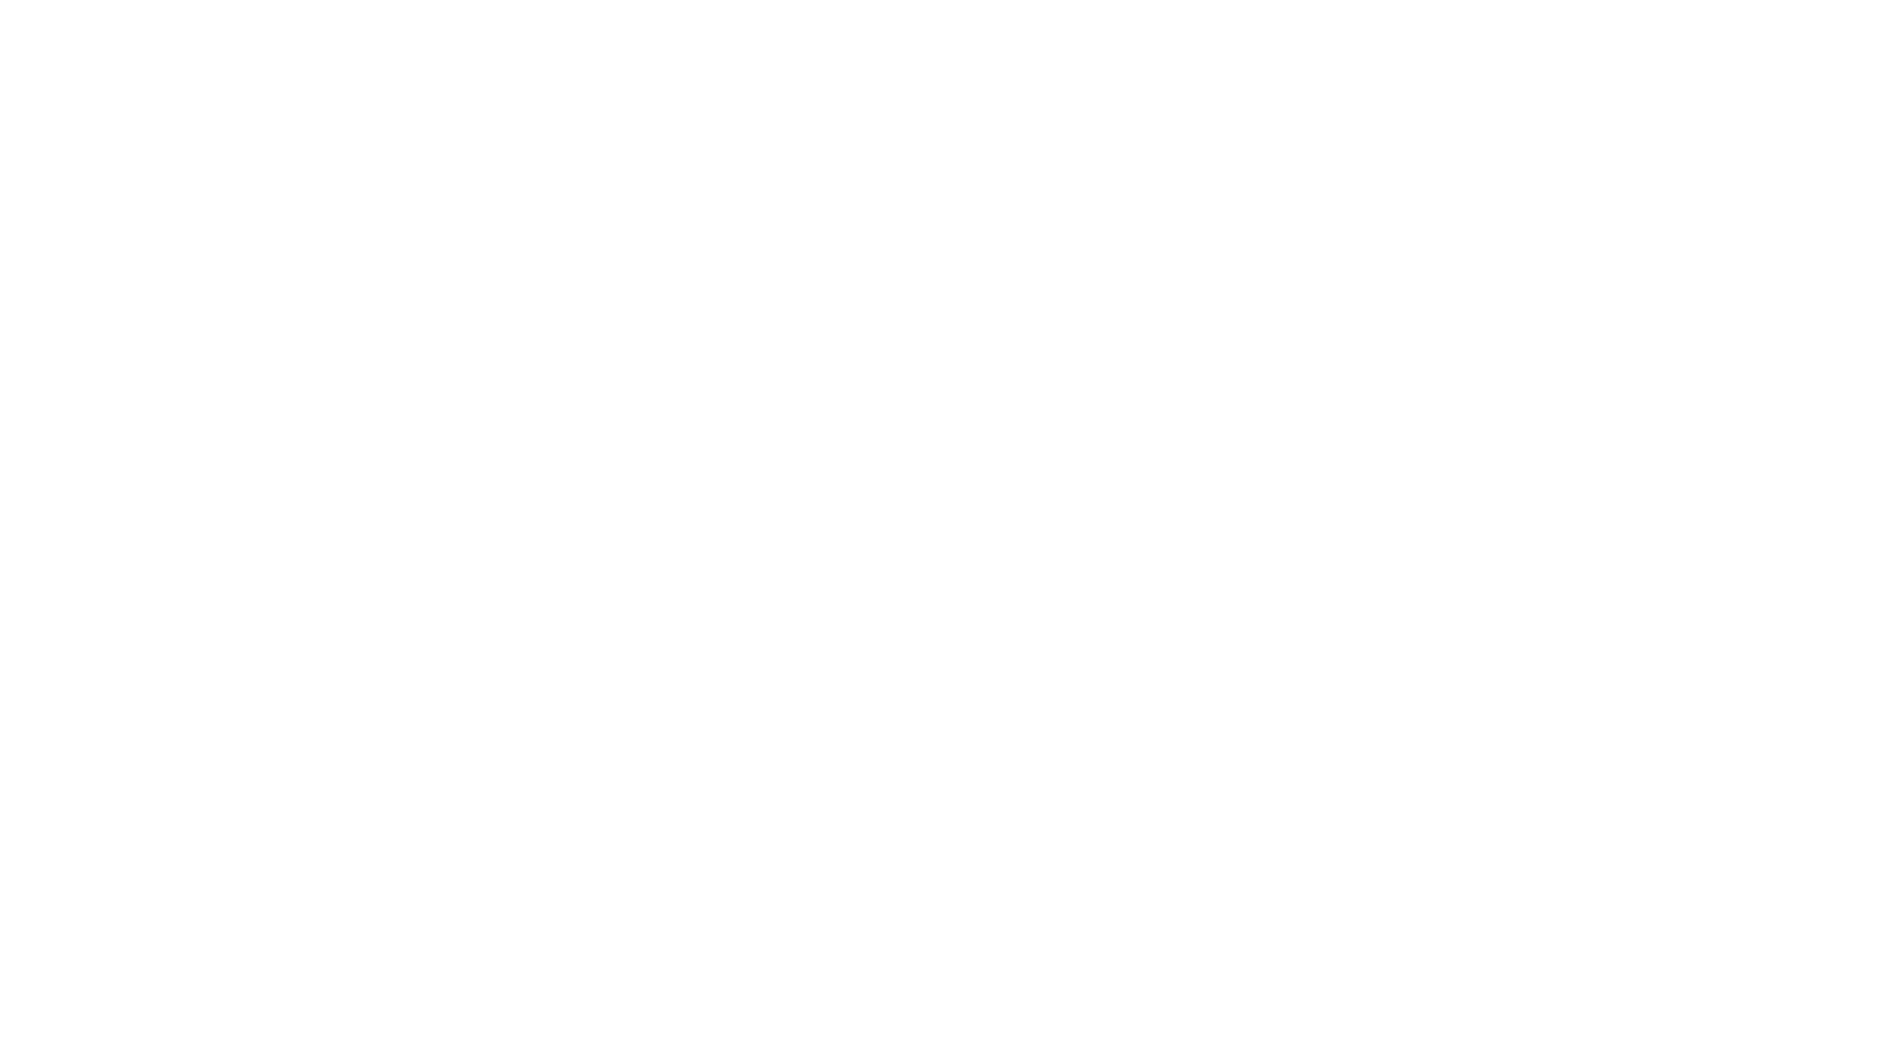 THE SHOP ONLINE